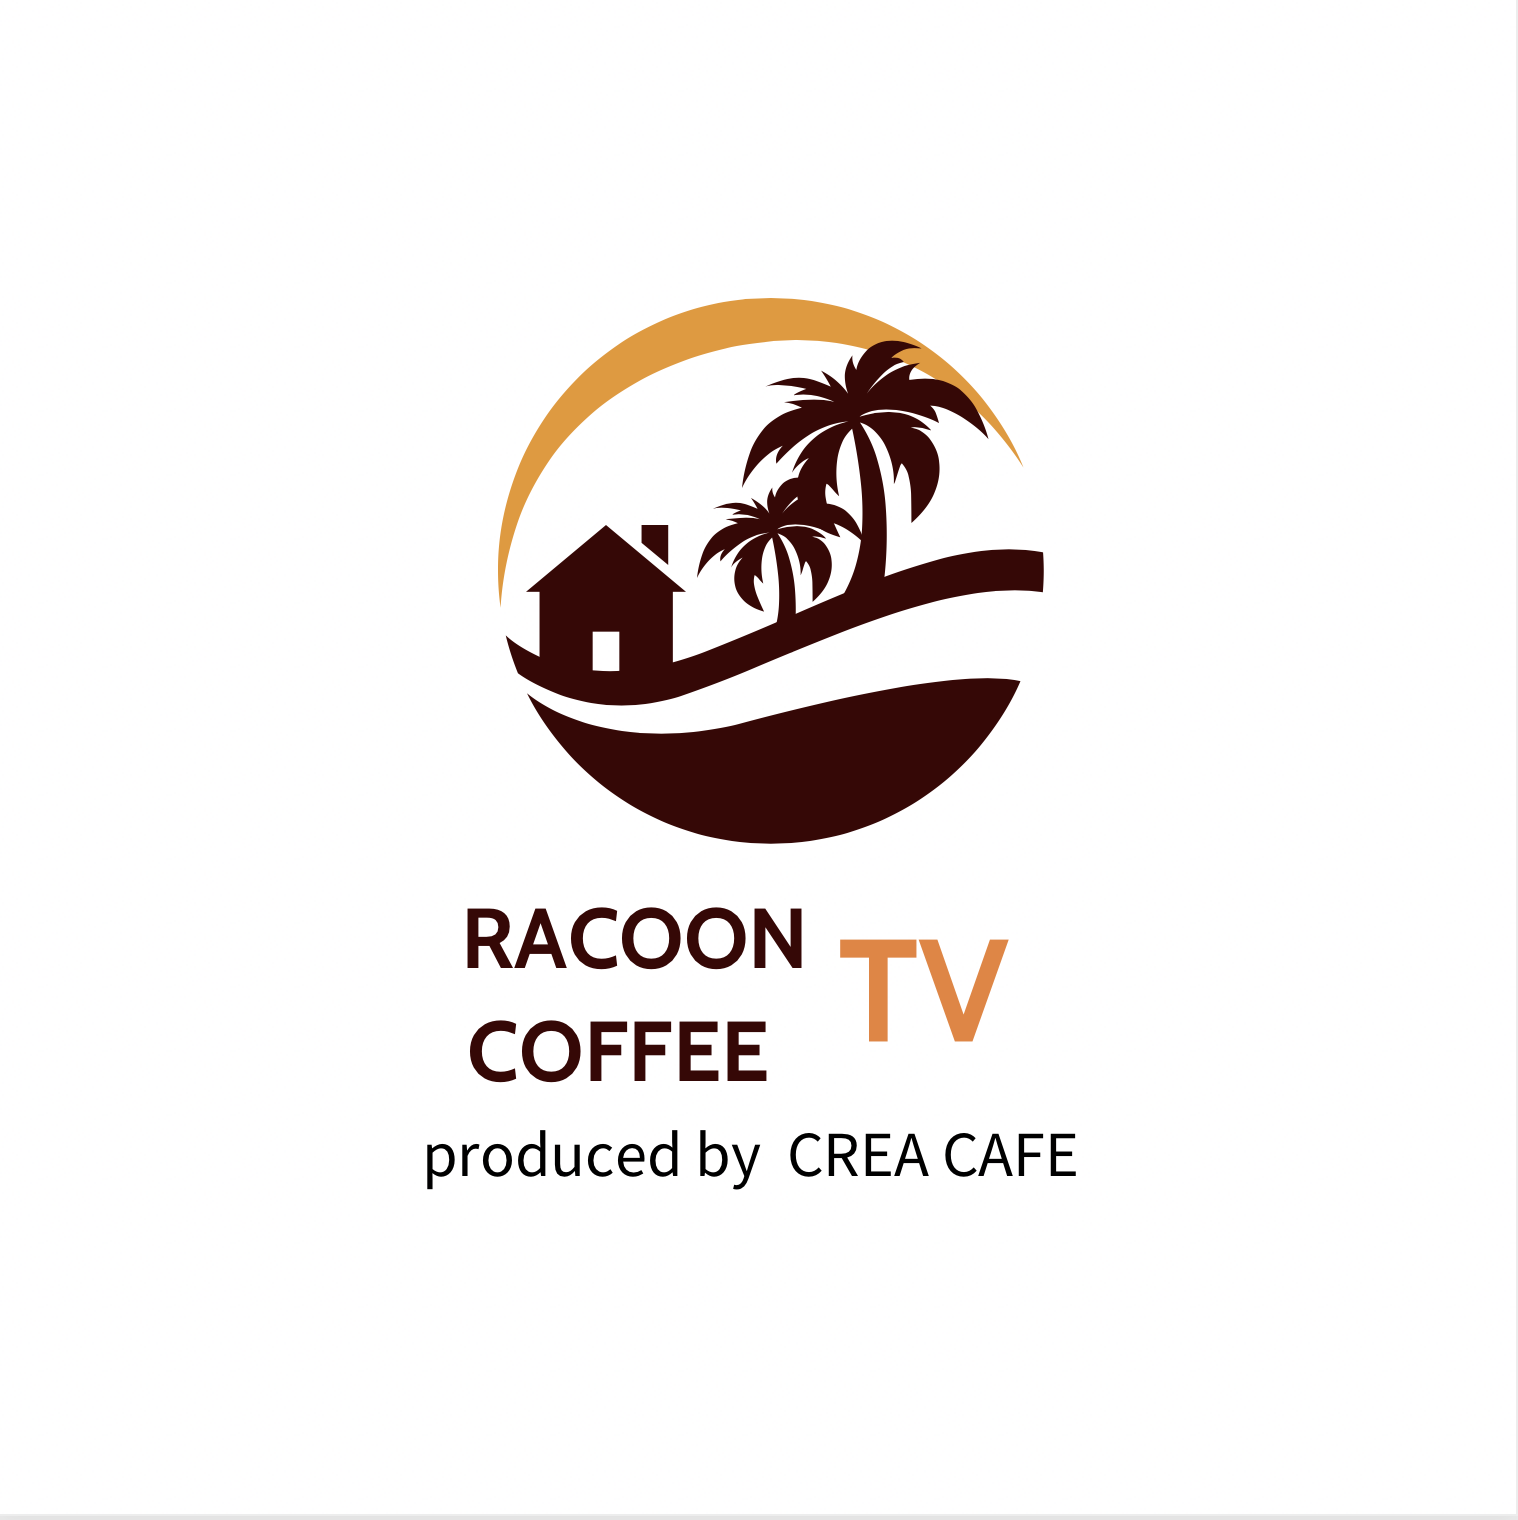 RACOON COFFEE TV ロゴ